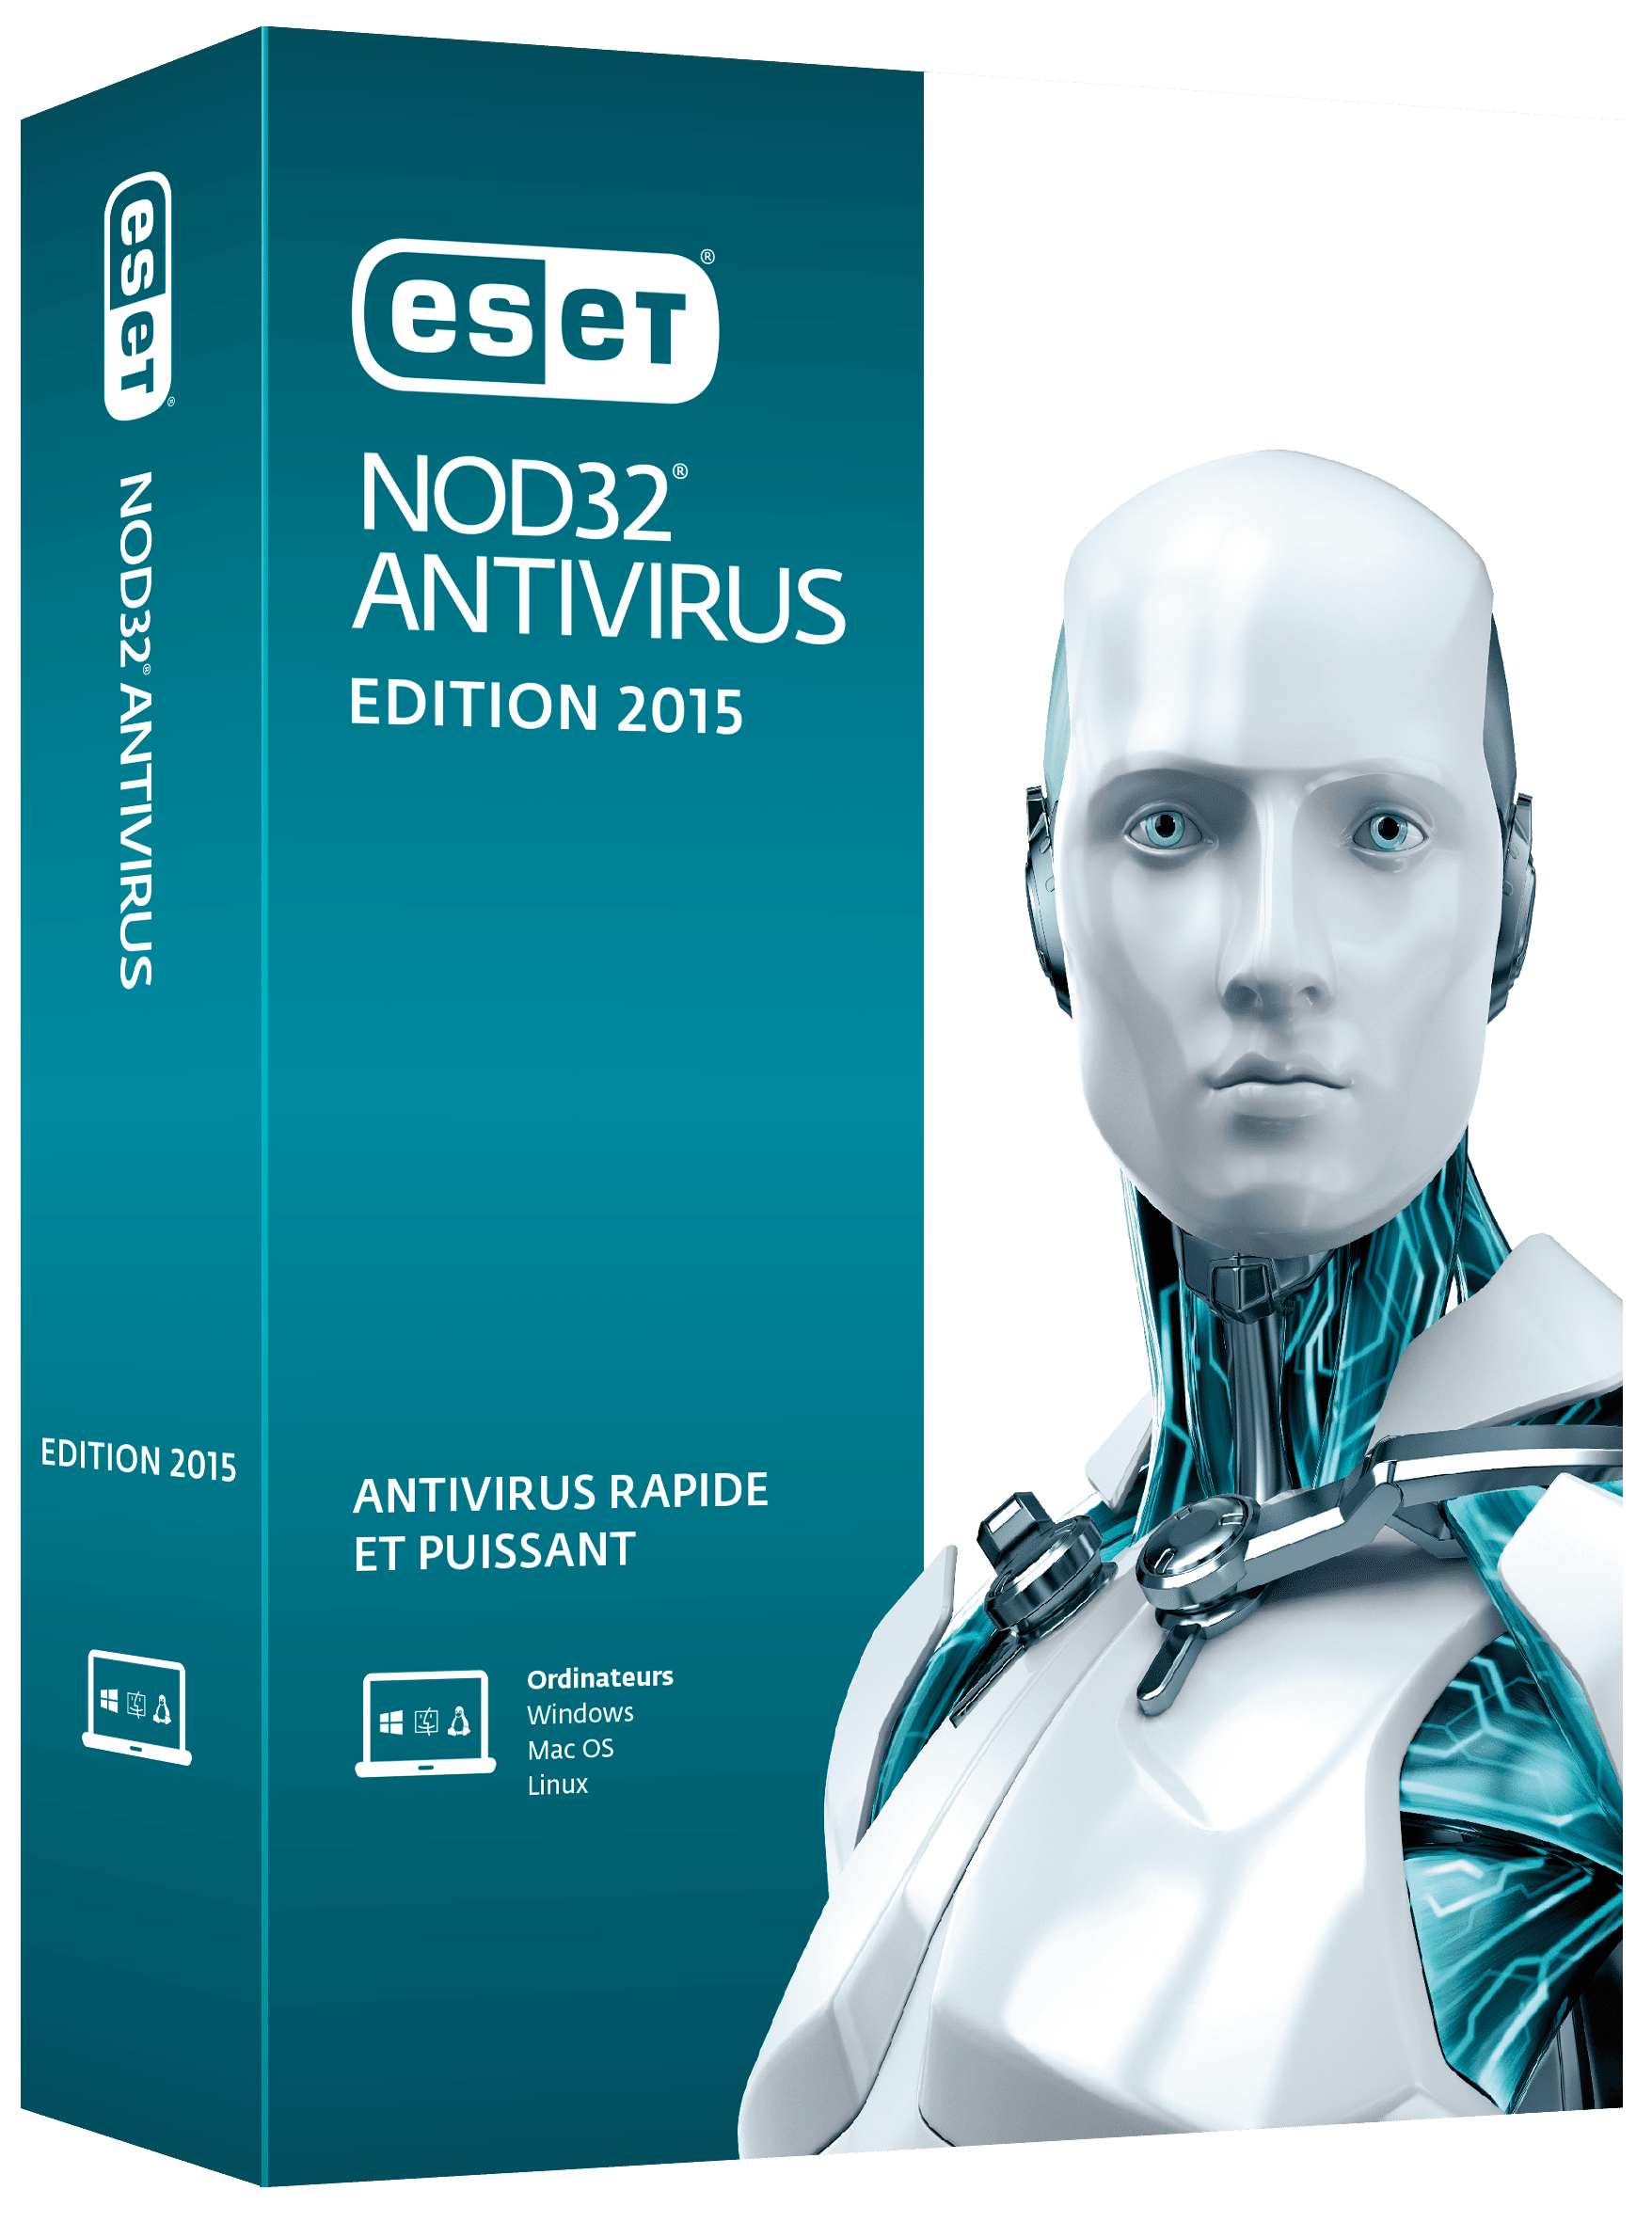 Eset3D-Box-antivirus-d.inform